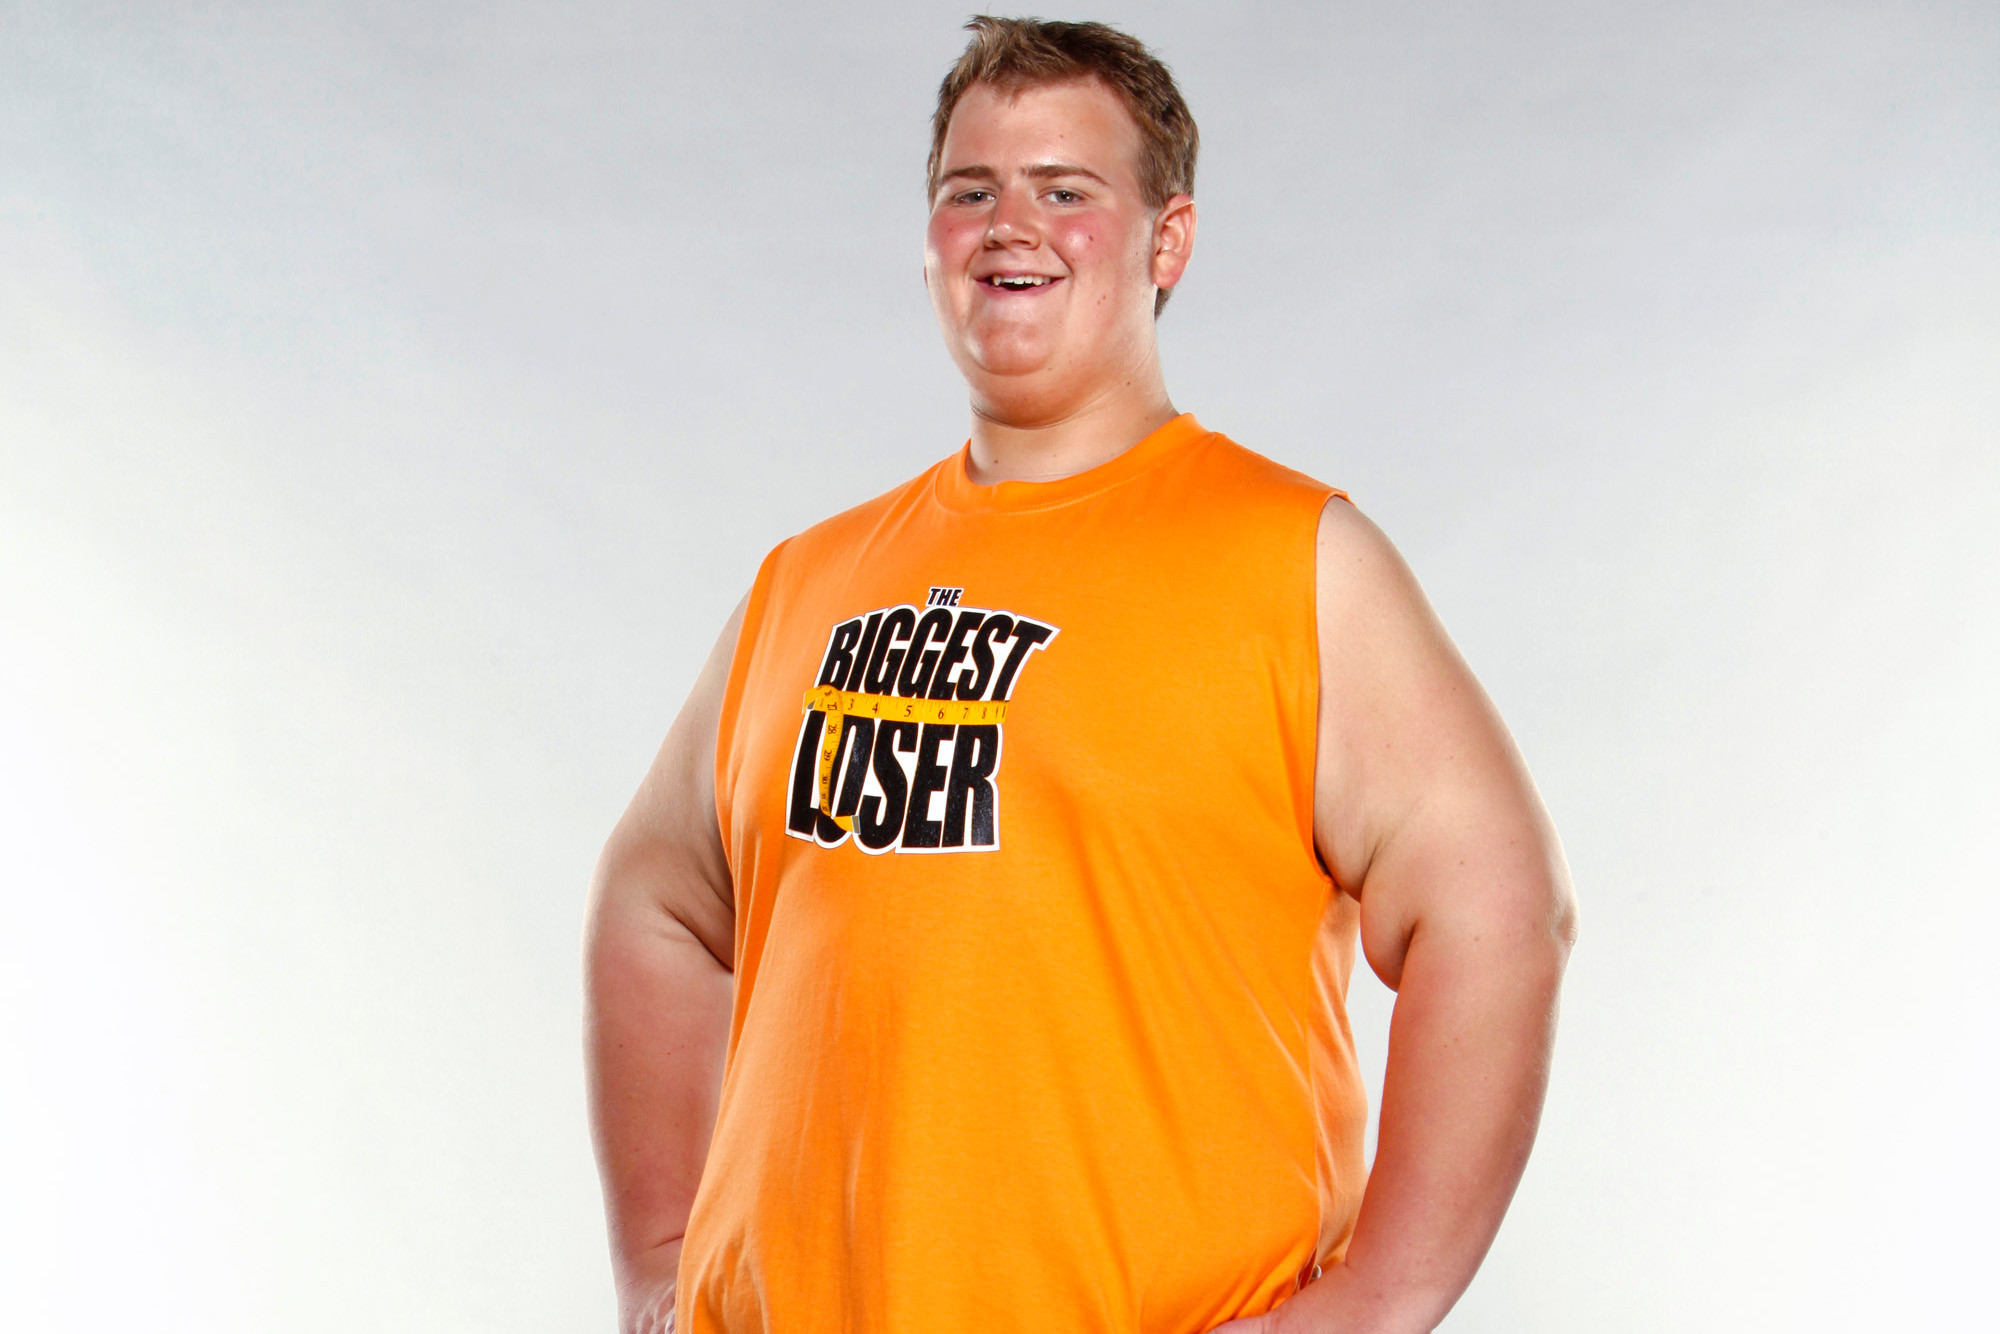 The Biggest Loser's Daniel Wright Dies at 30 After a Long Battle From Cancer